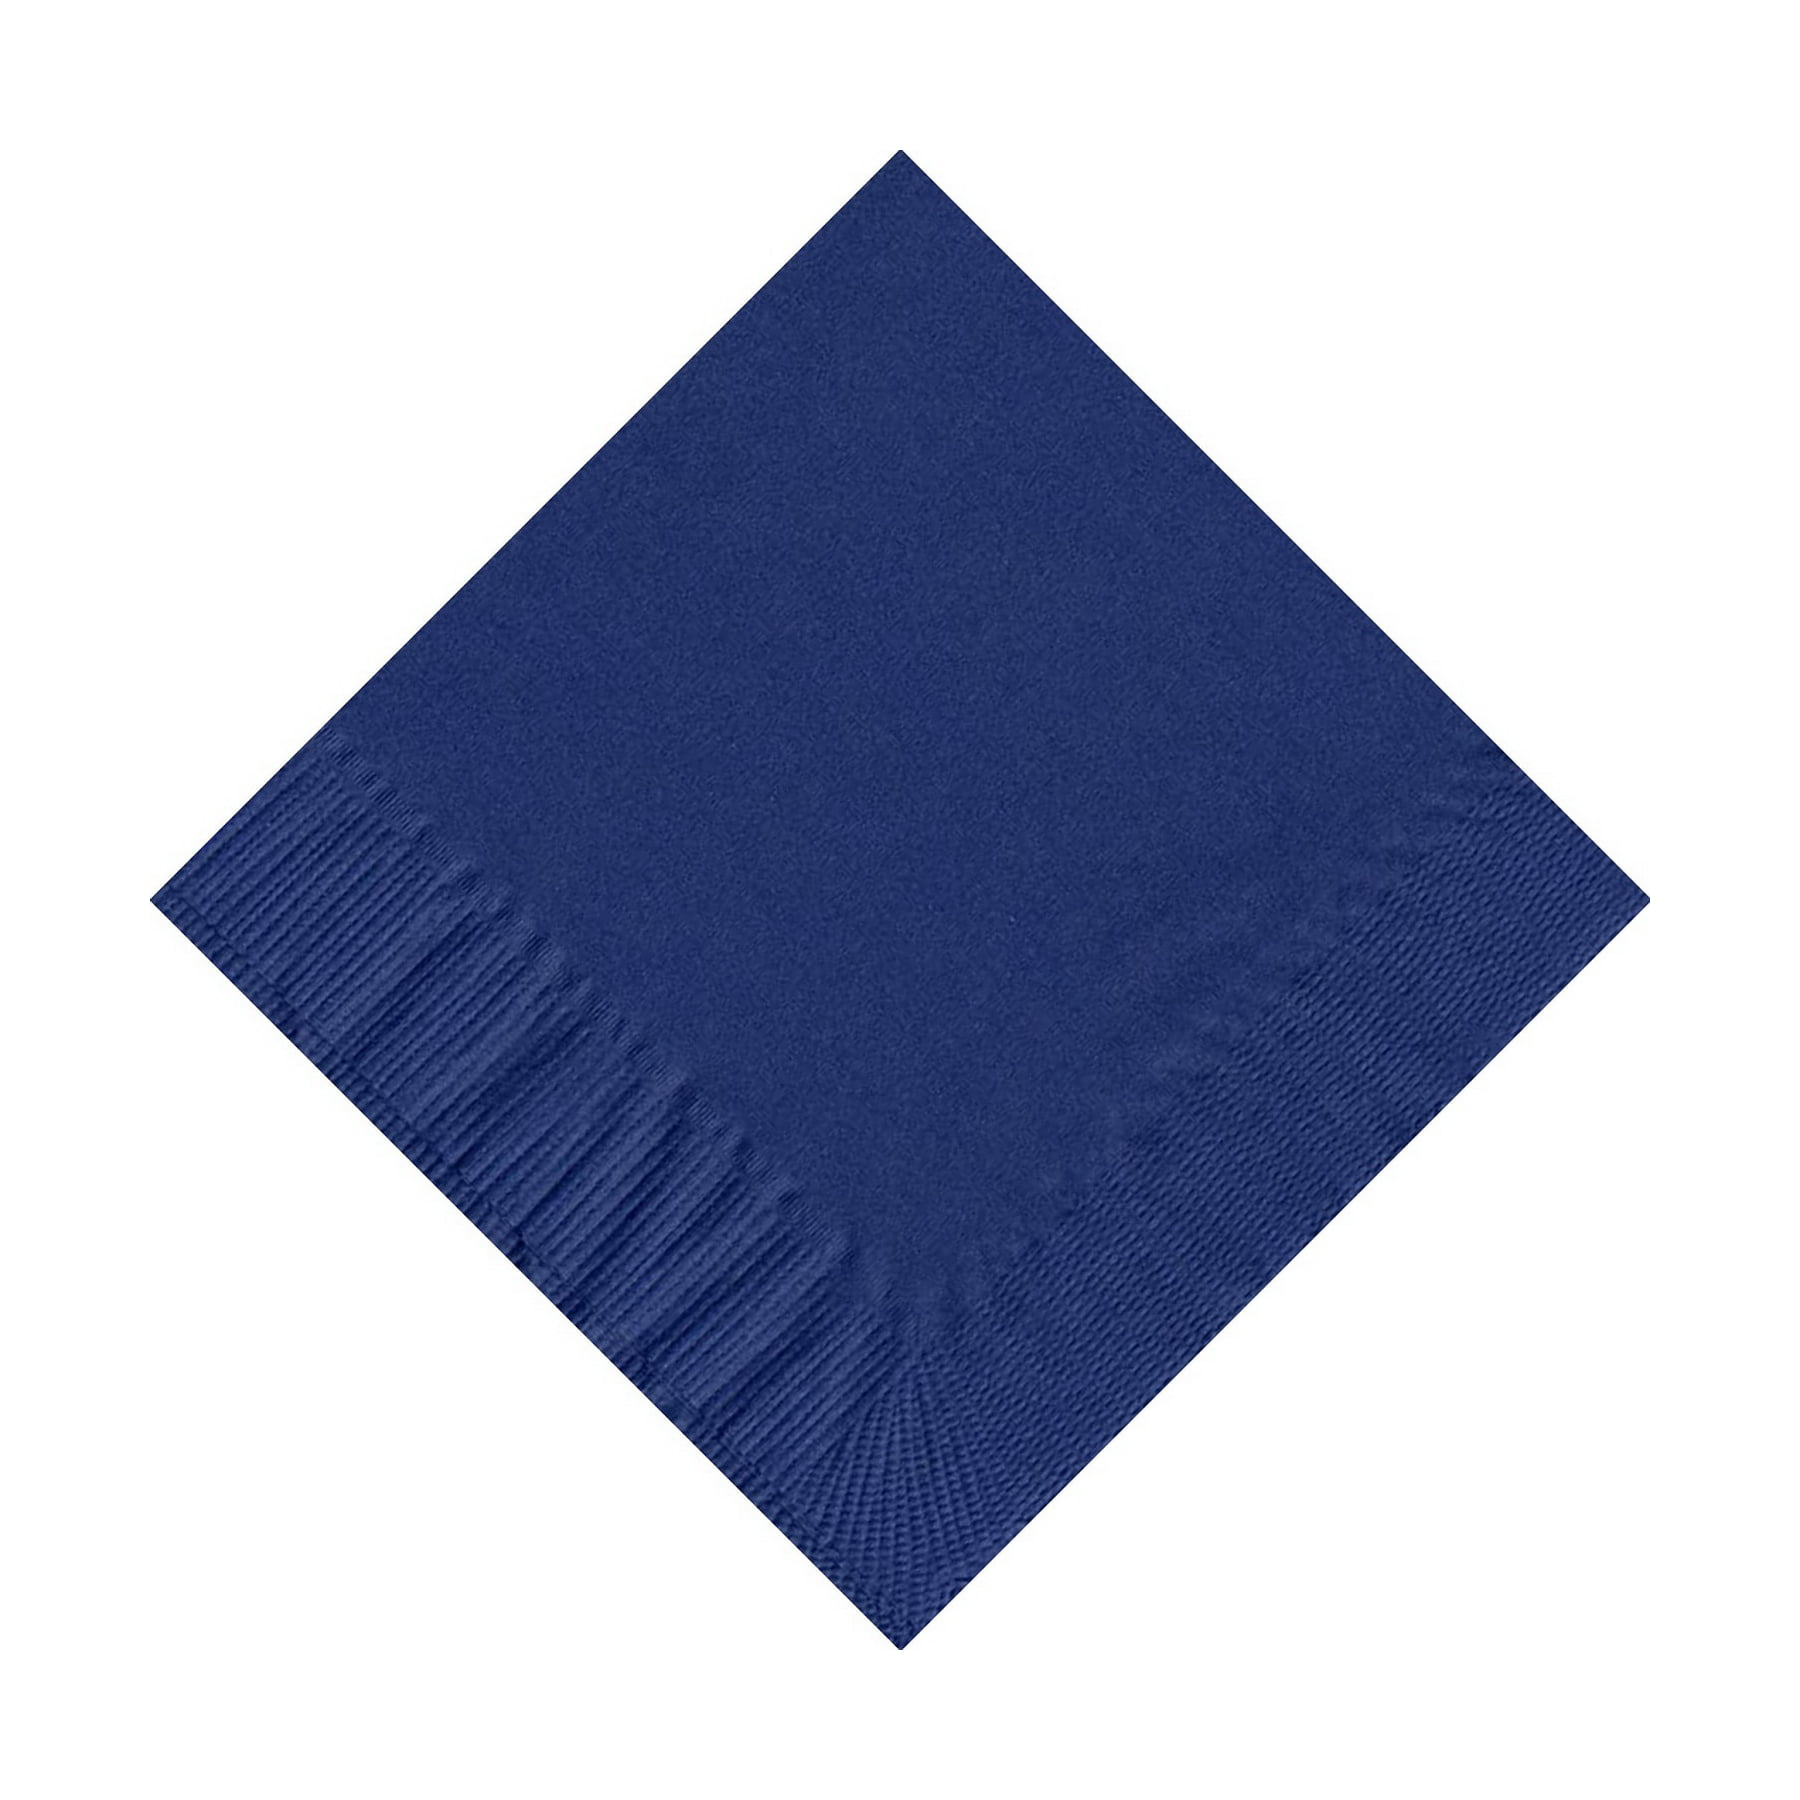 50 Plain Solid Colors Beverage Cocktail Napkins Paper Navy Blue by CREATIVE CONVERTING